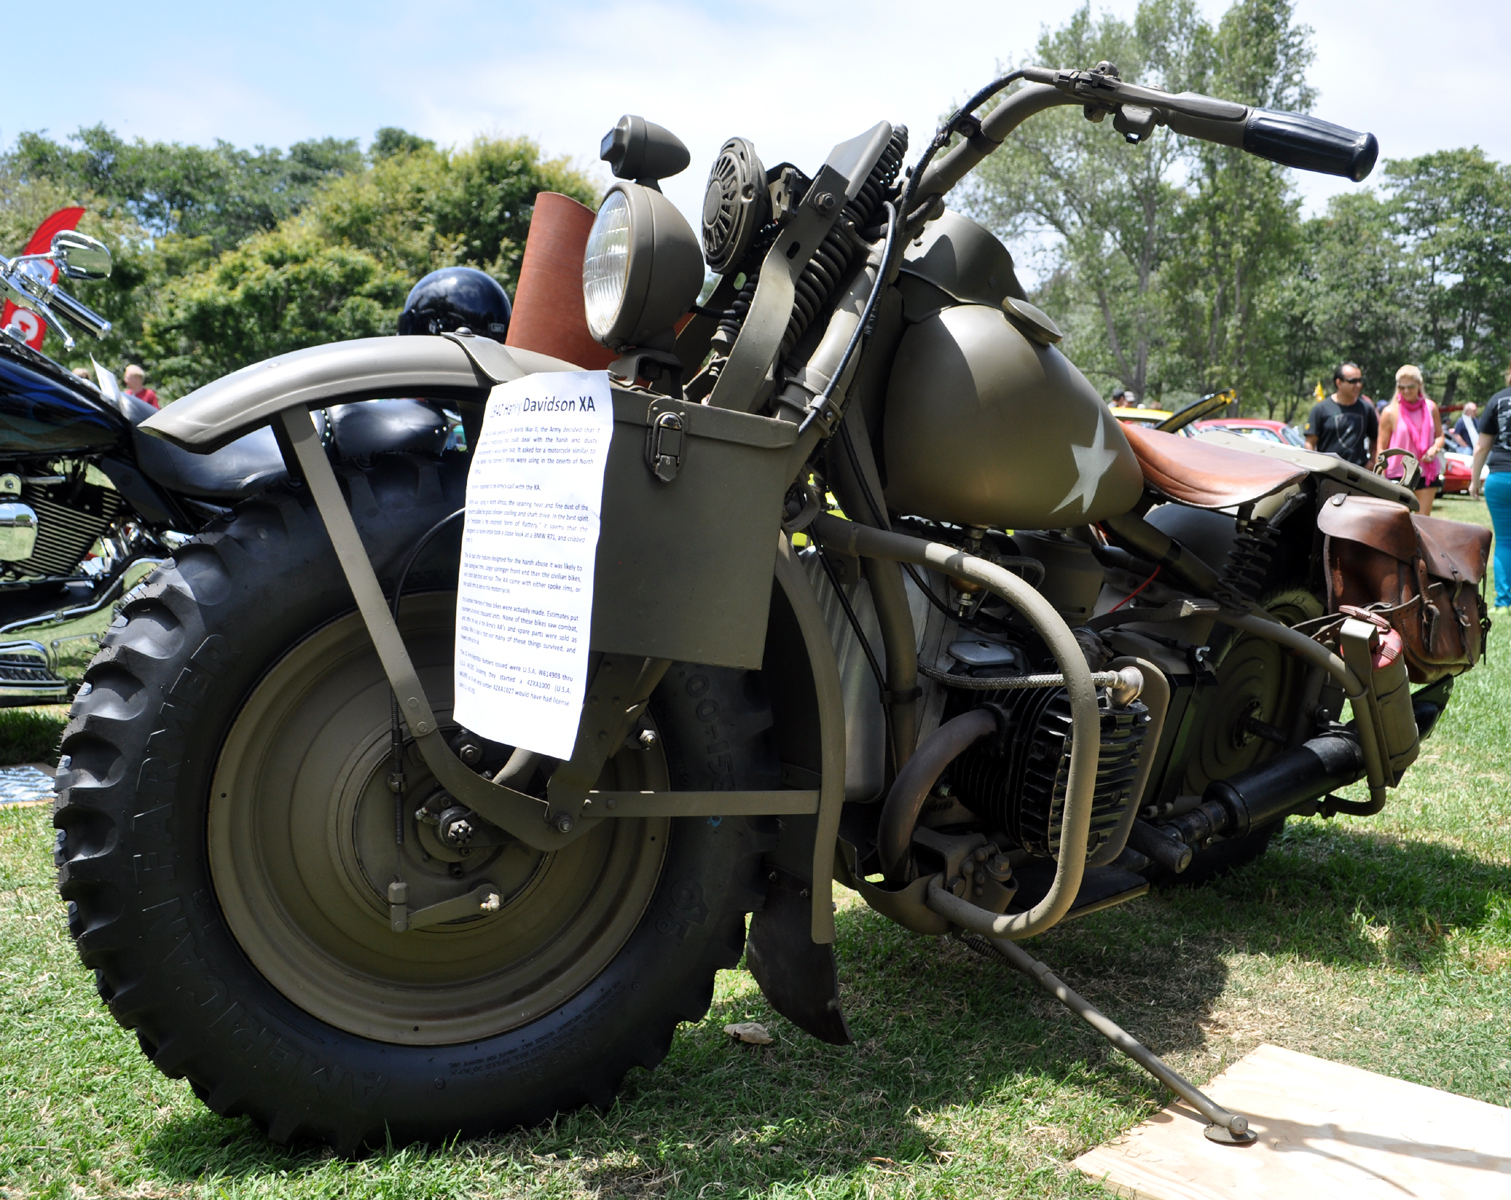 Classic Cars Authority 1942 Harley Davidson Xa Military Grade Hog Not A V Twin